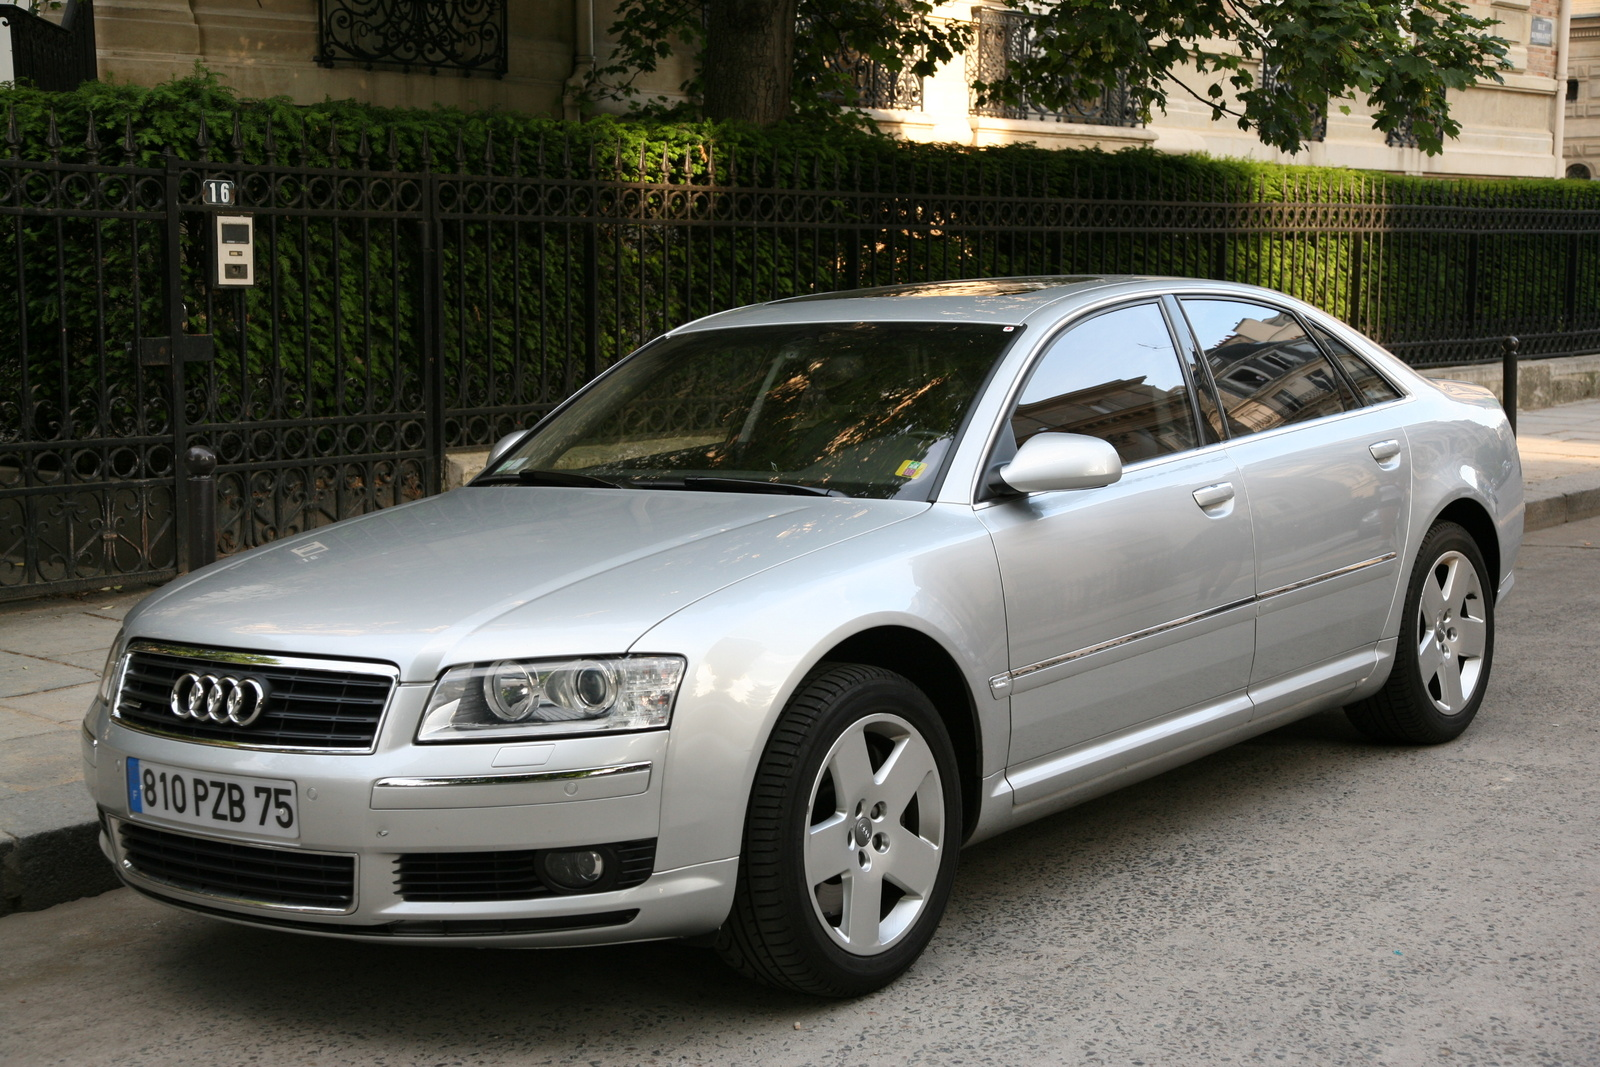 2004 Audi A8 Information And Photos Zombiedrive Fuse Box 17